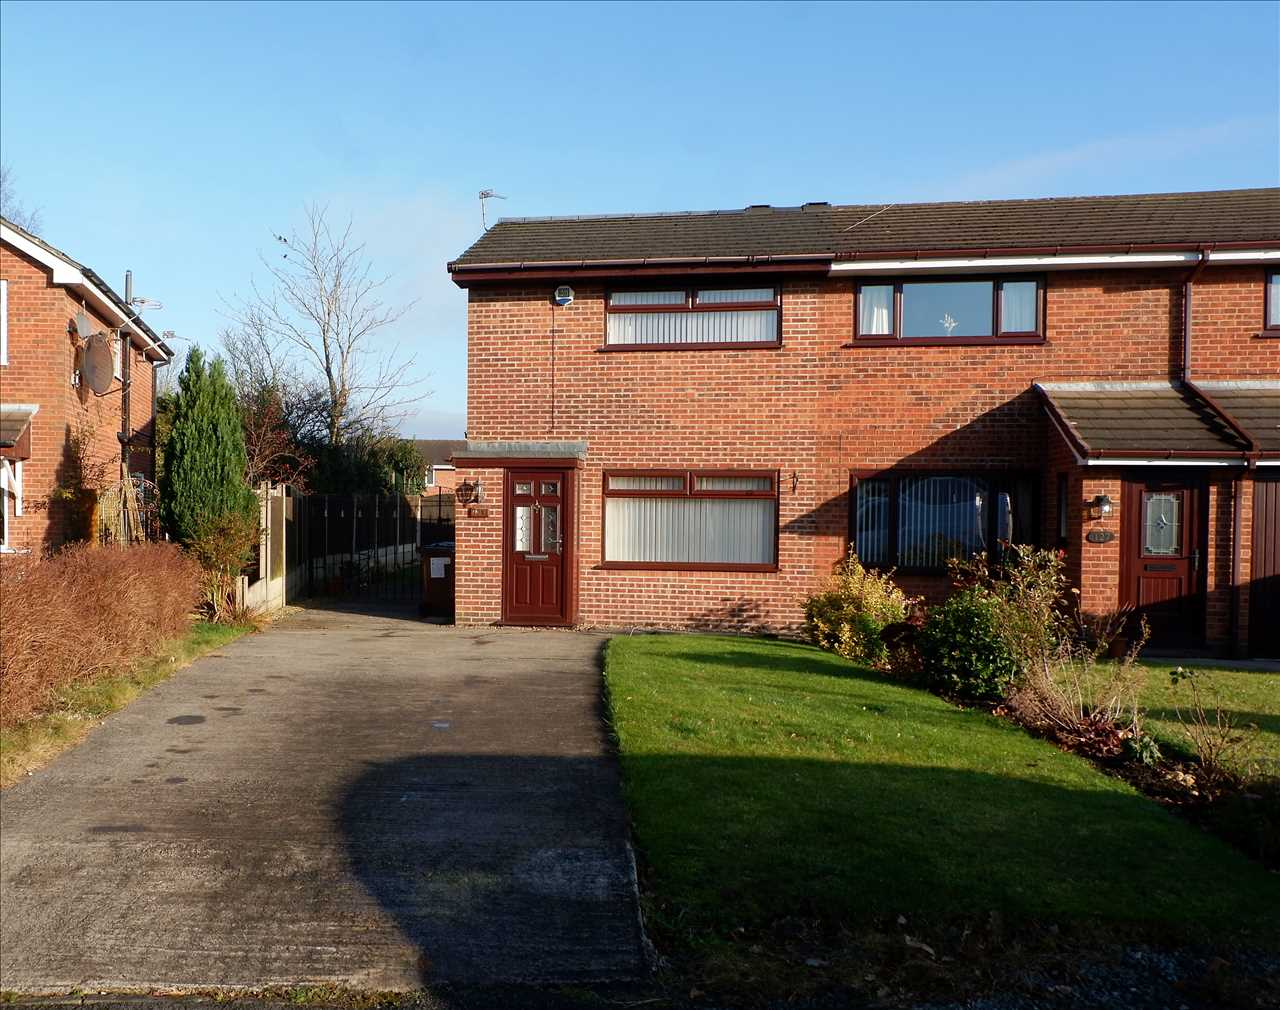 2 bed semi-detached for sale in Carrington Road, Adlington, Adlington, PR7